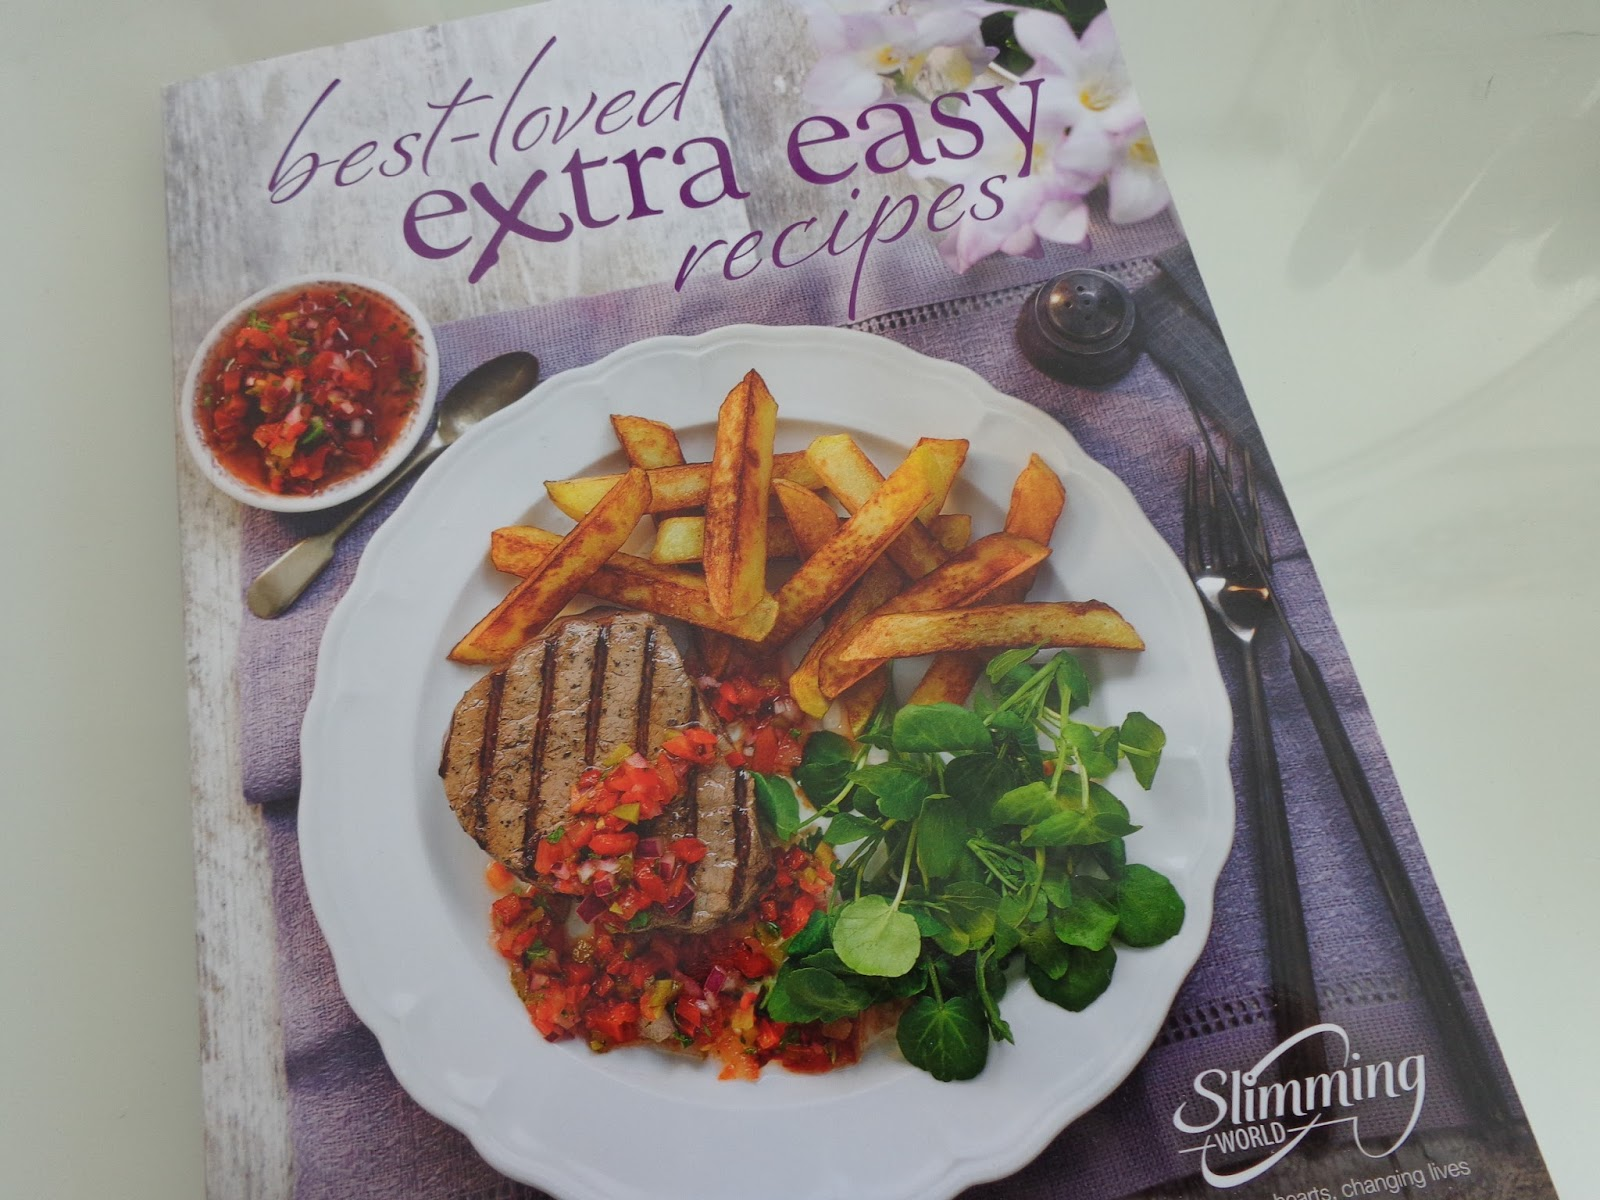 How Slimming World Works